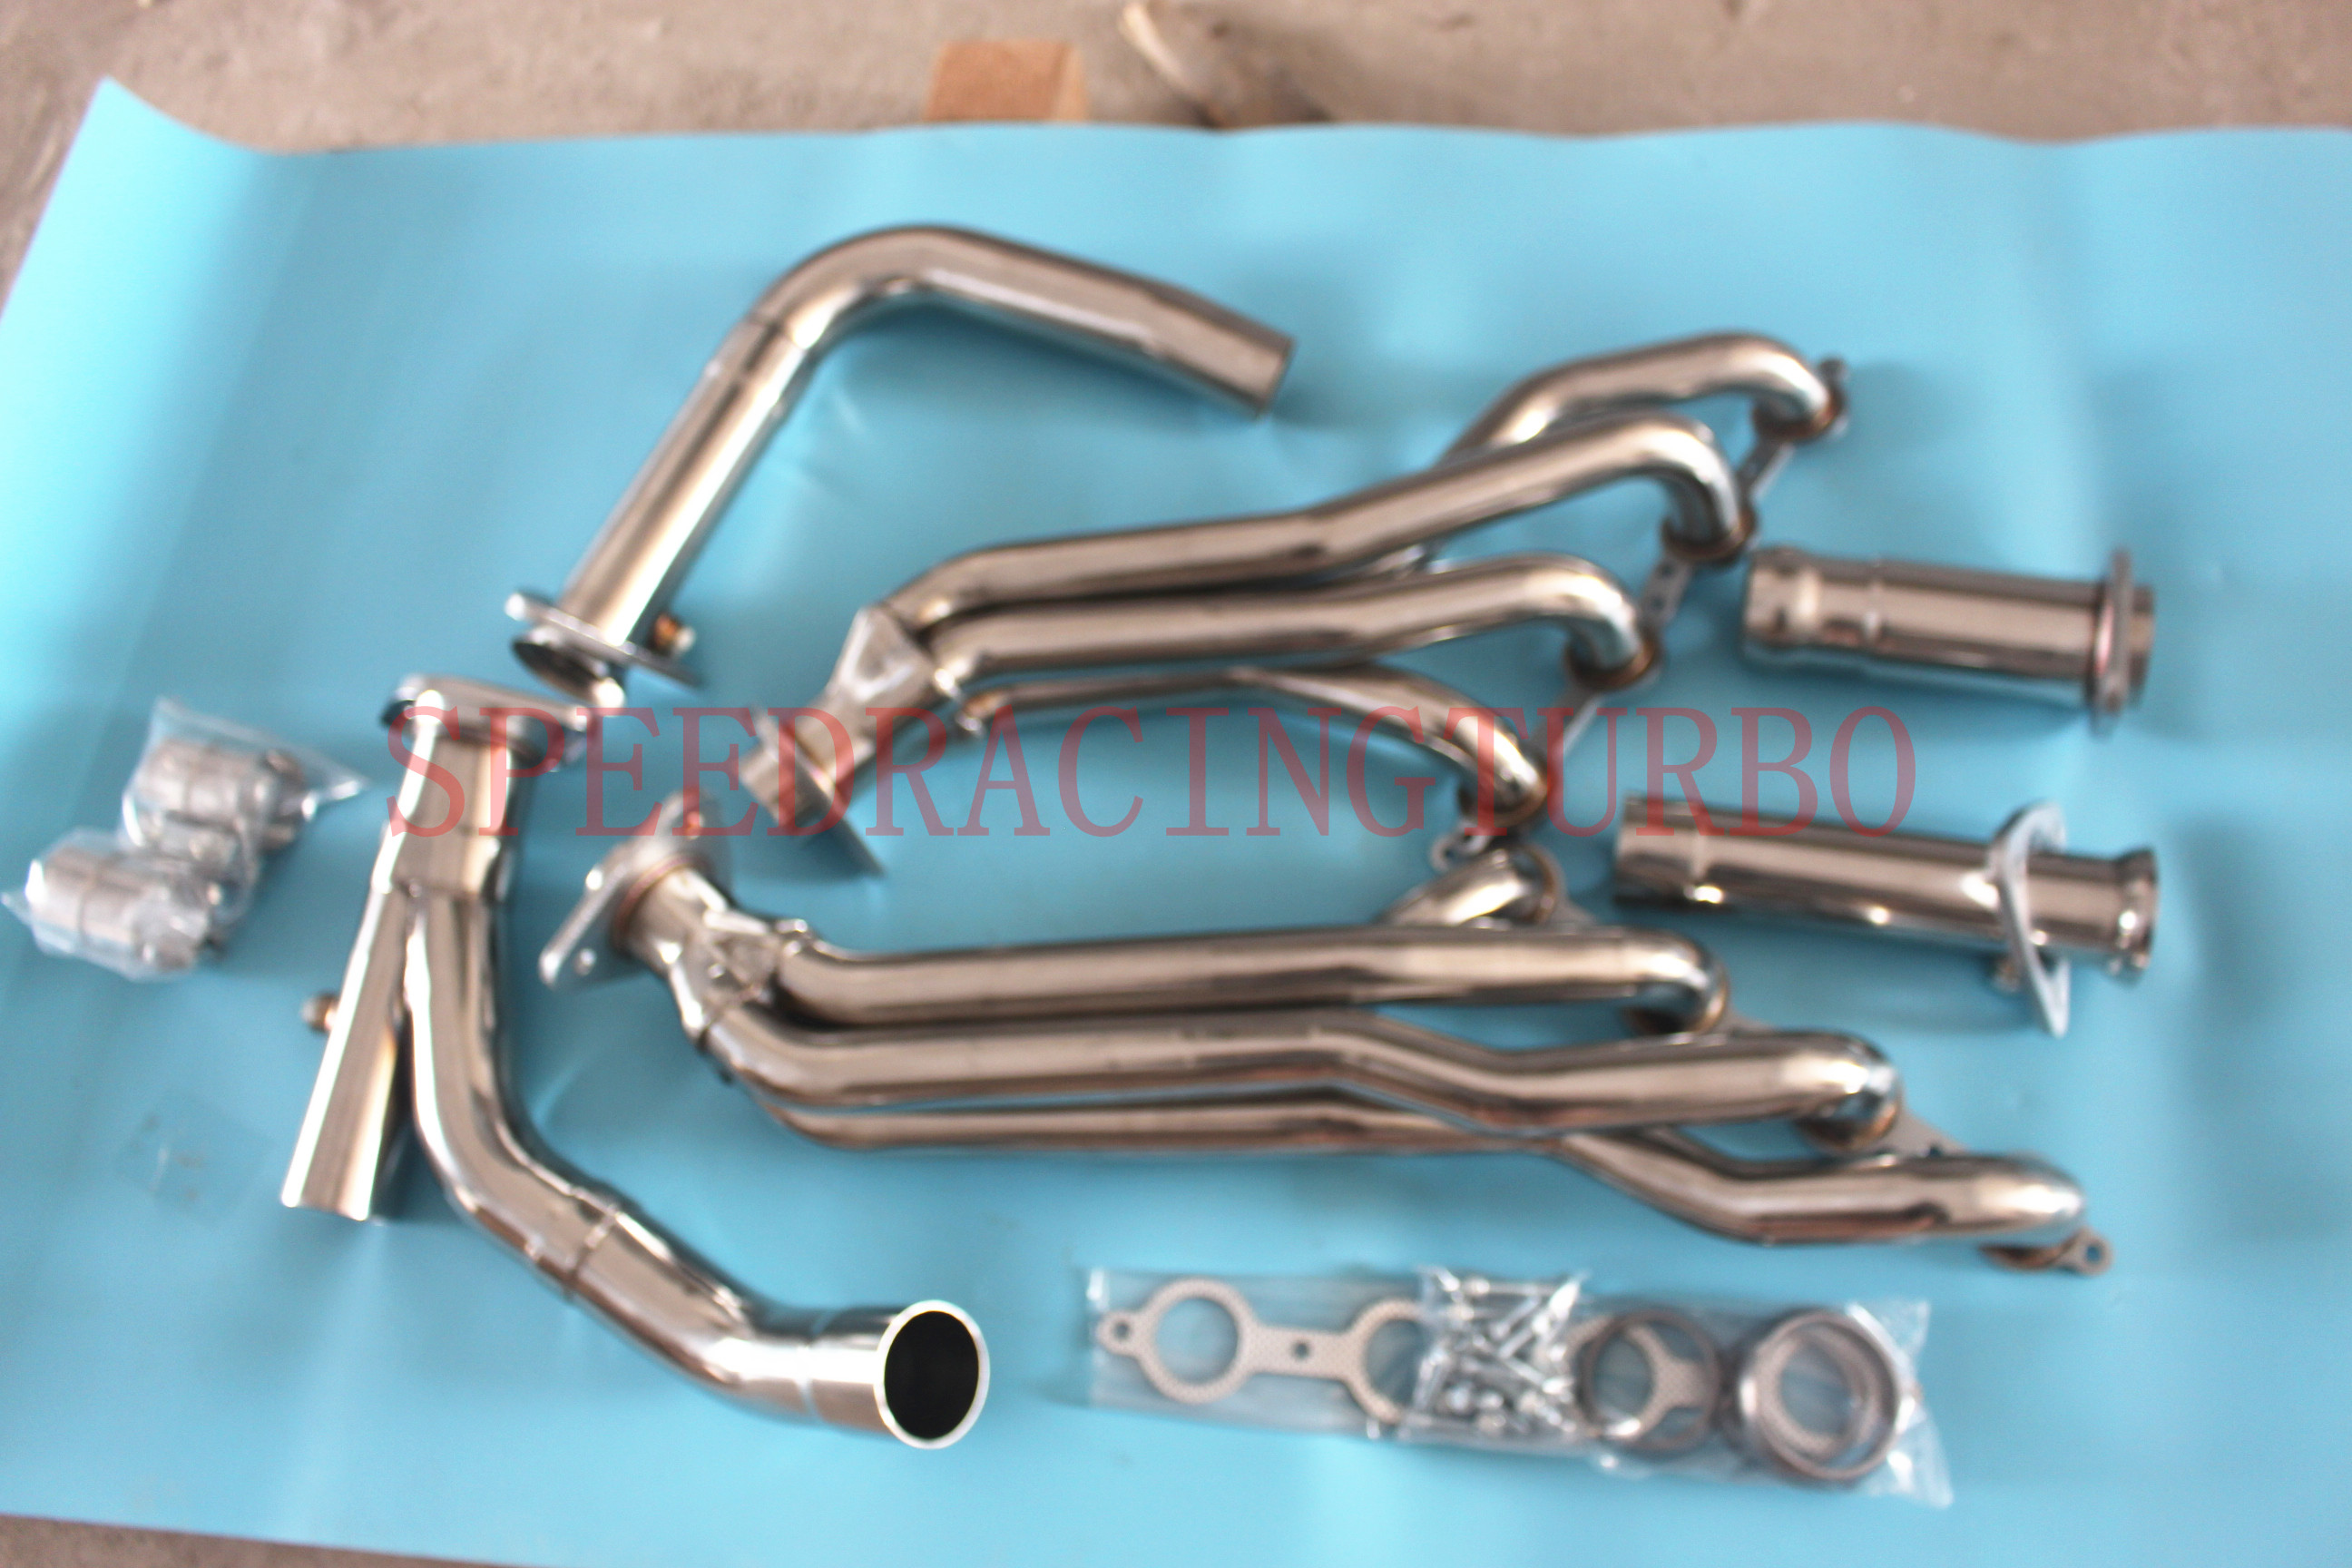 EXHAUST HEADER FOR CHEVY/GMC GMT900 4.8/5.3/6.0+Y-PIPE STAINLESS STEEL LONG TUBE  STAINLESS STEEL ONE PAIR MID X PIPE